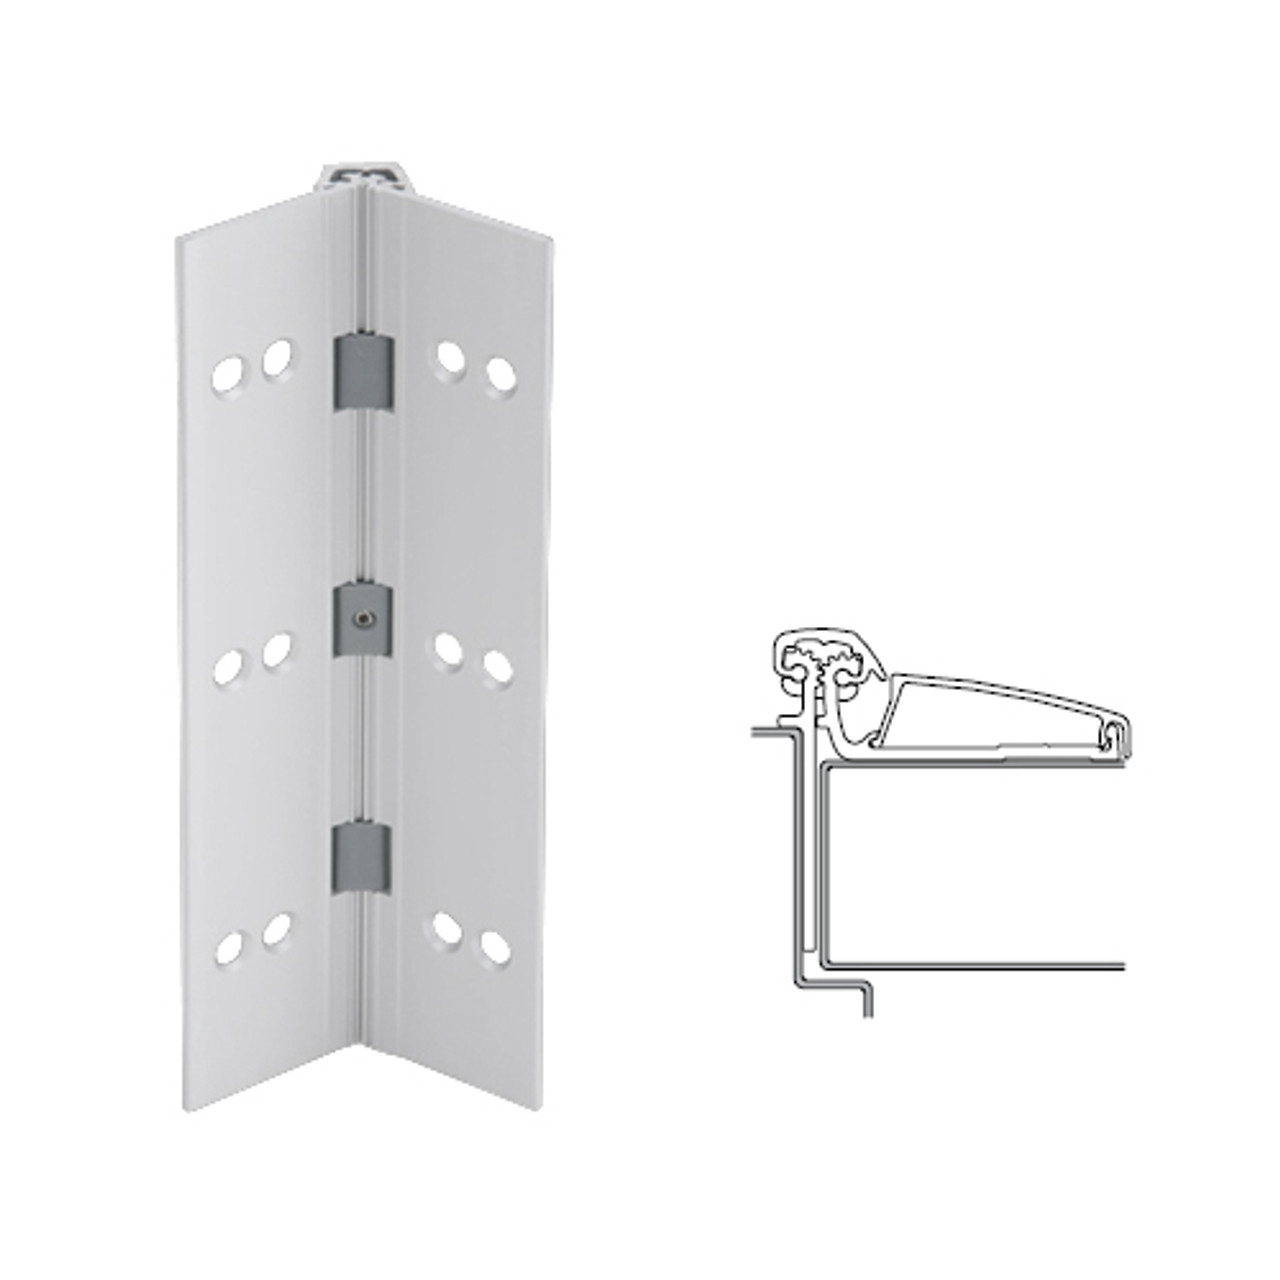 046XY-US28-95 IVES Adjustable Half Surface Continuous Geared Hinges in Satin Aluminum